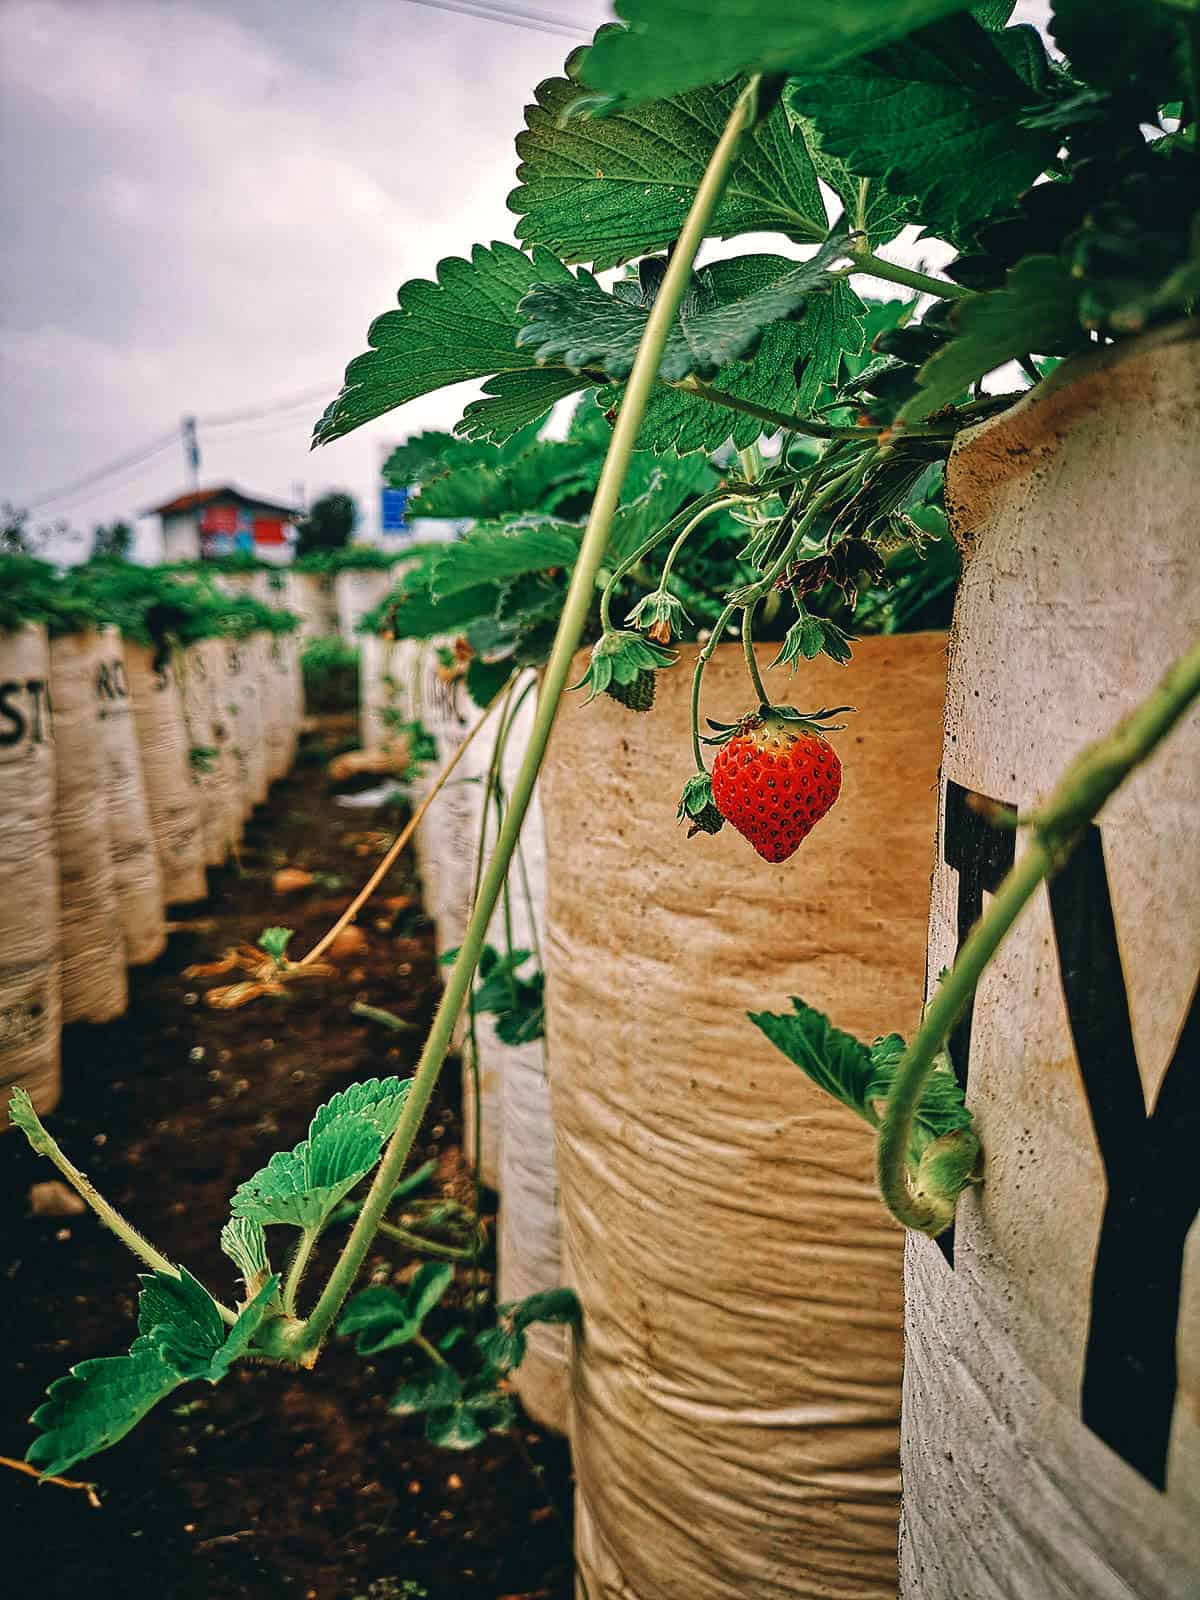 Strawberry Picking in Bandung, Indonesia